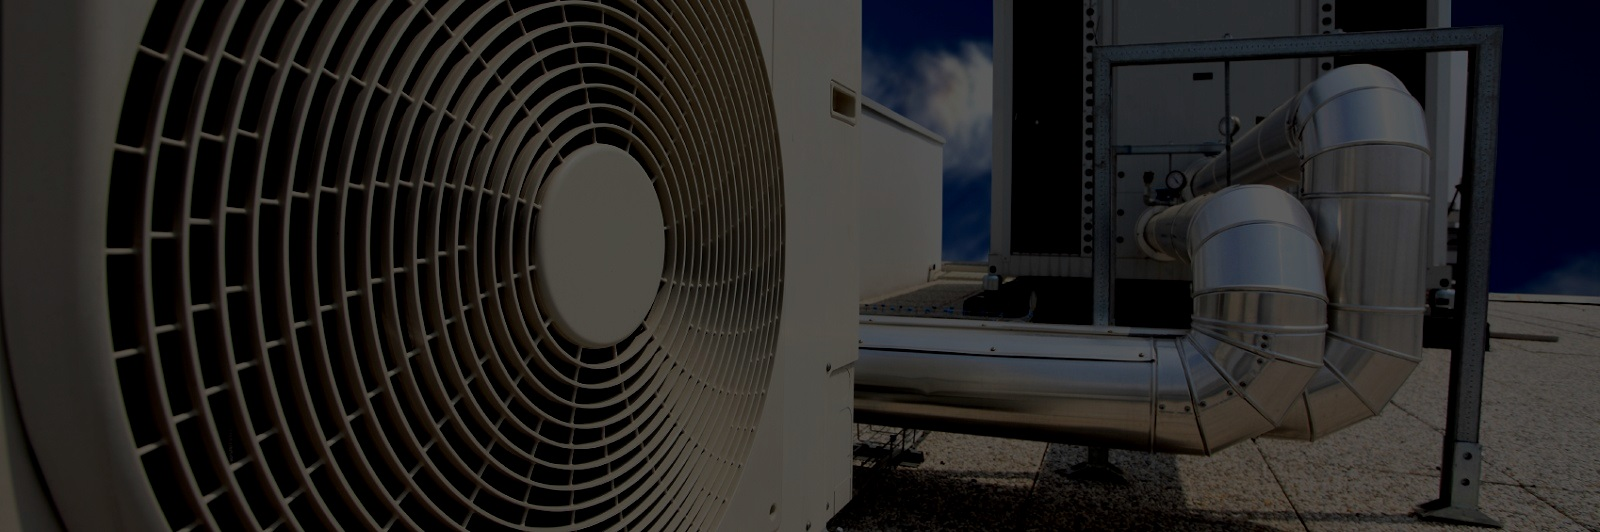 air conditioning slider image